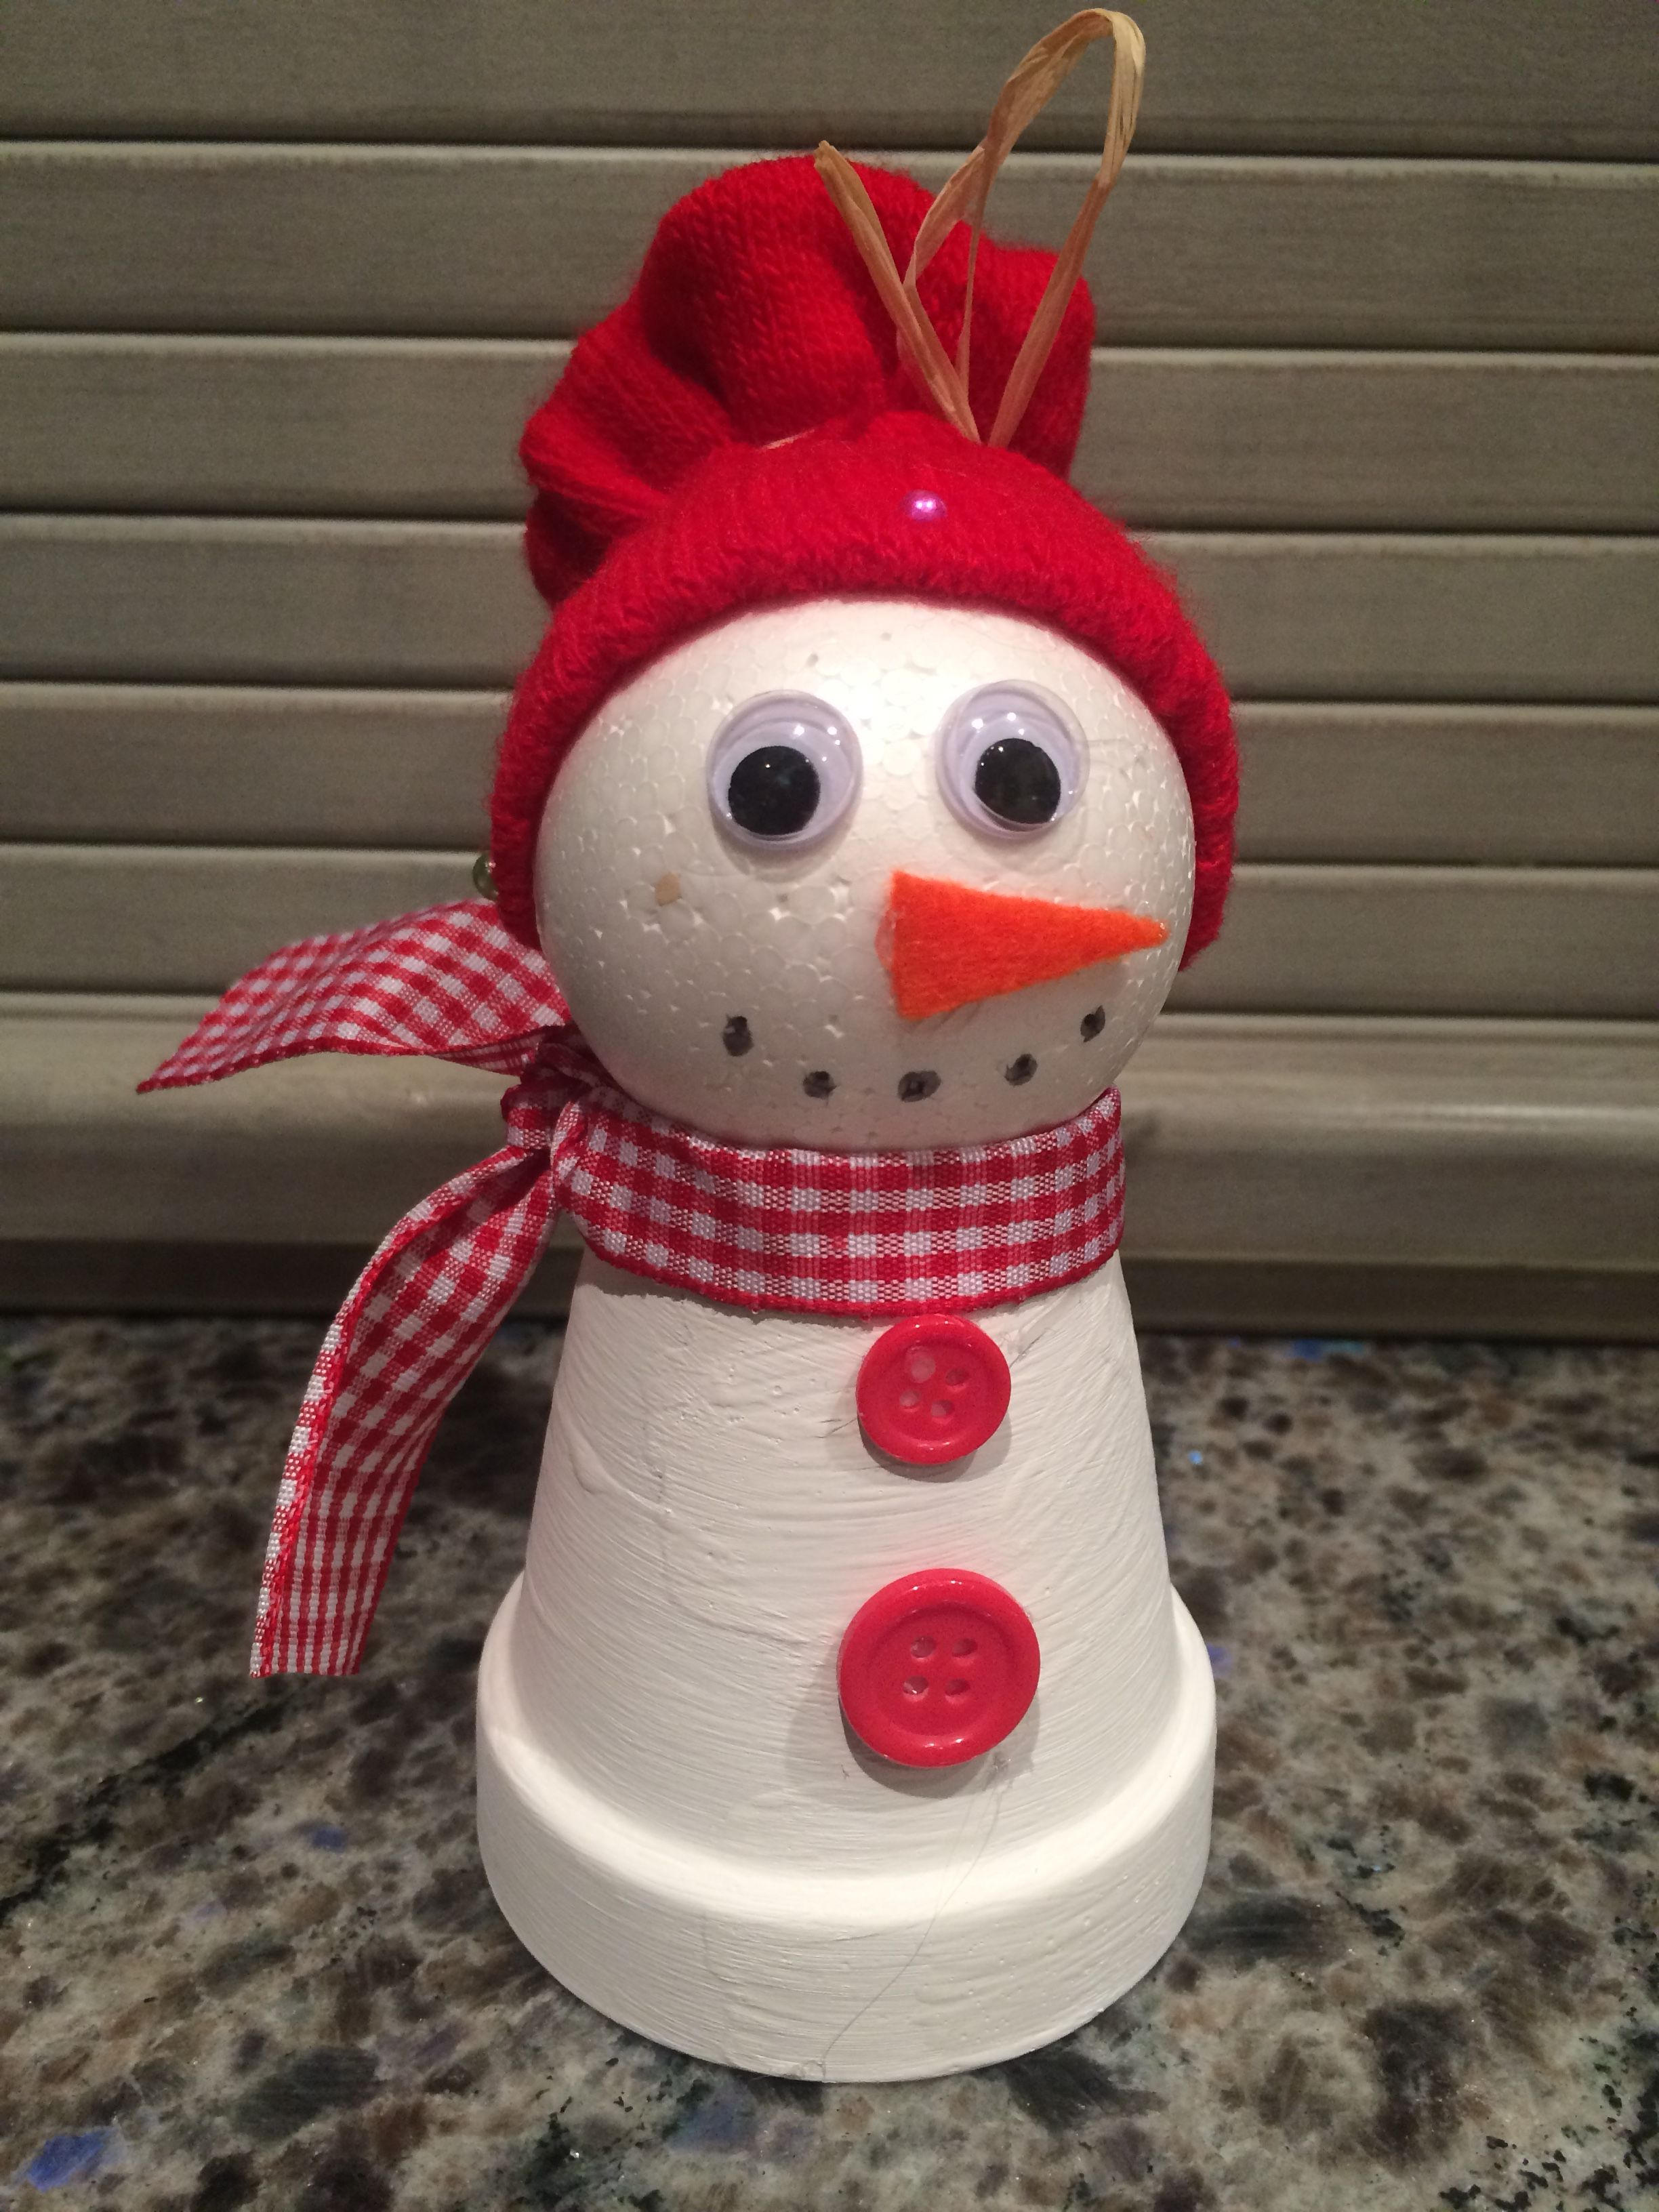 Snowman made with clay pot and Styrofoam ball. A tiny